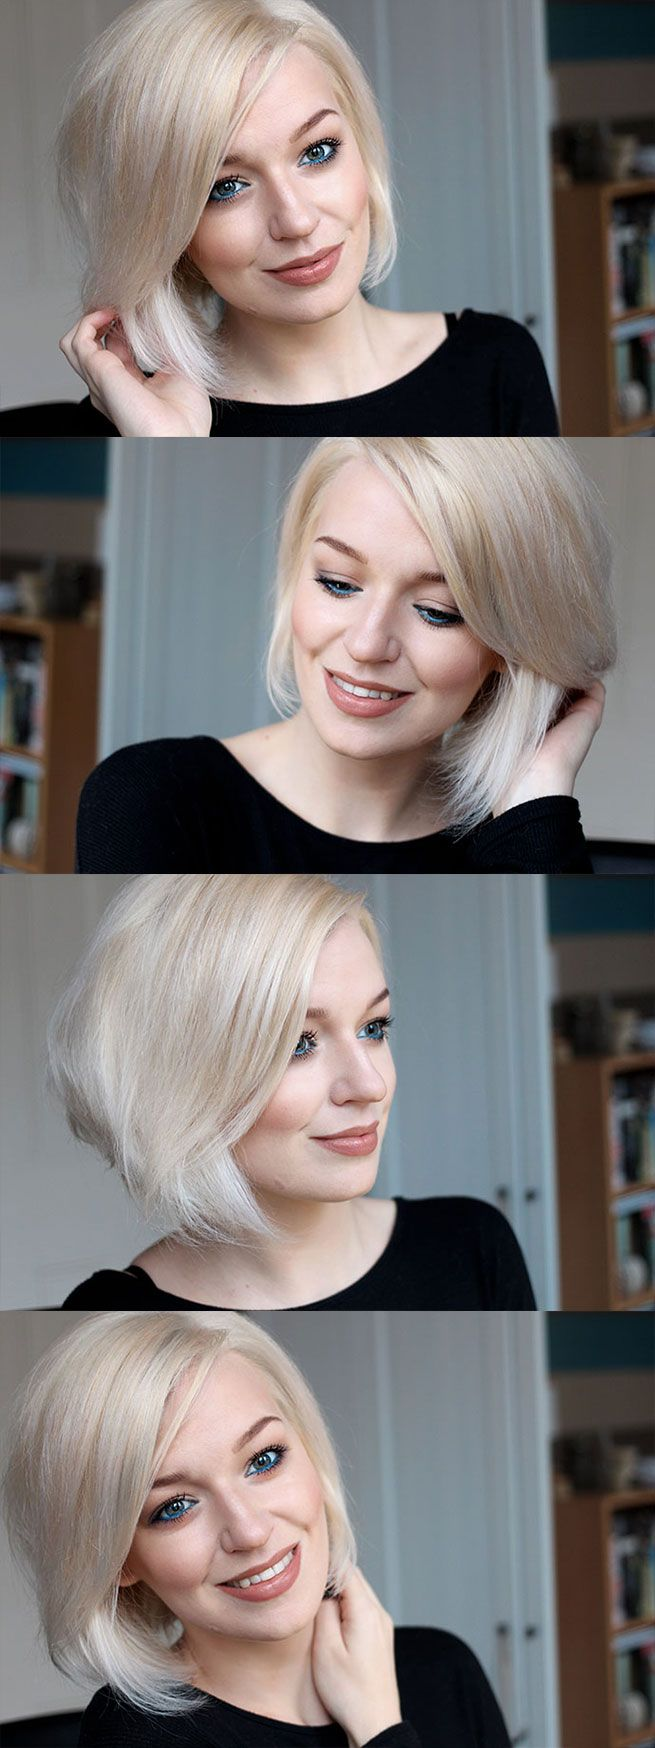 Platinum White  Blonde Short Hair Zoe Newlove